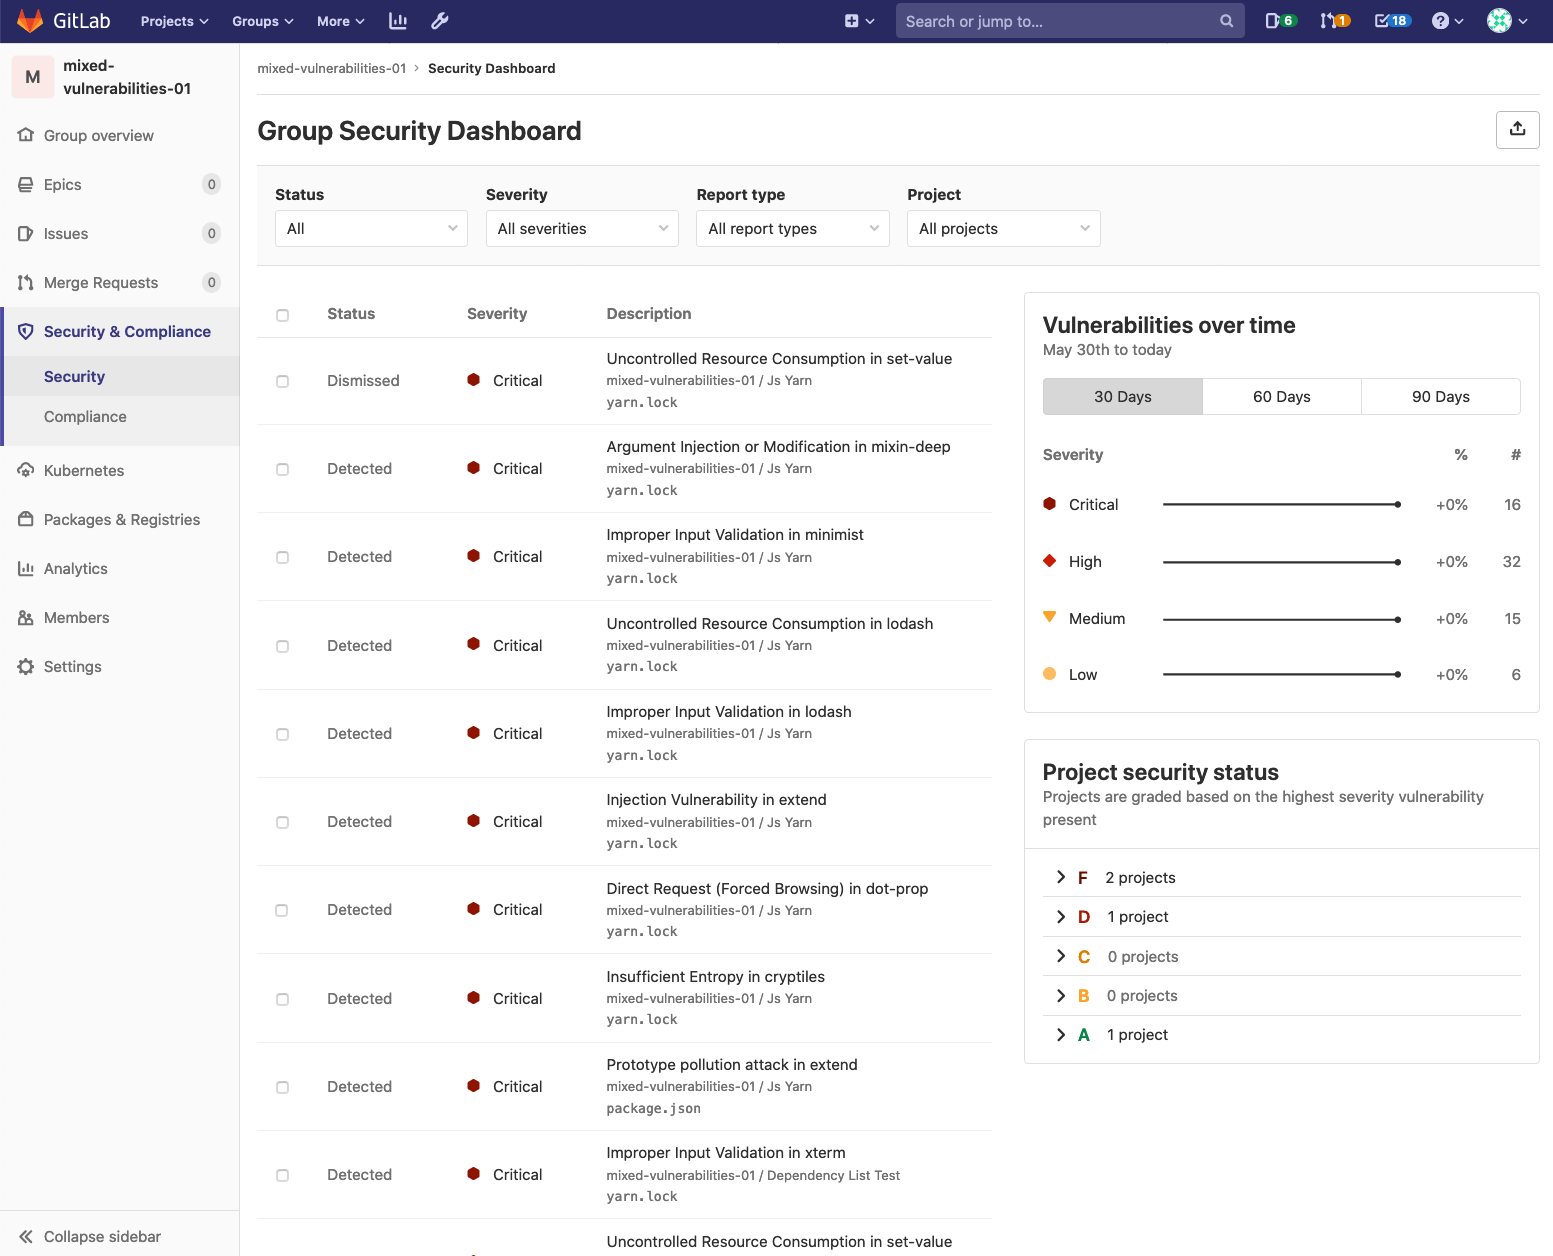 doc/user/application_security/security_dashboard/img/group_security_dashboard_v13_2.png